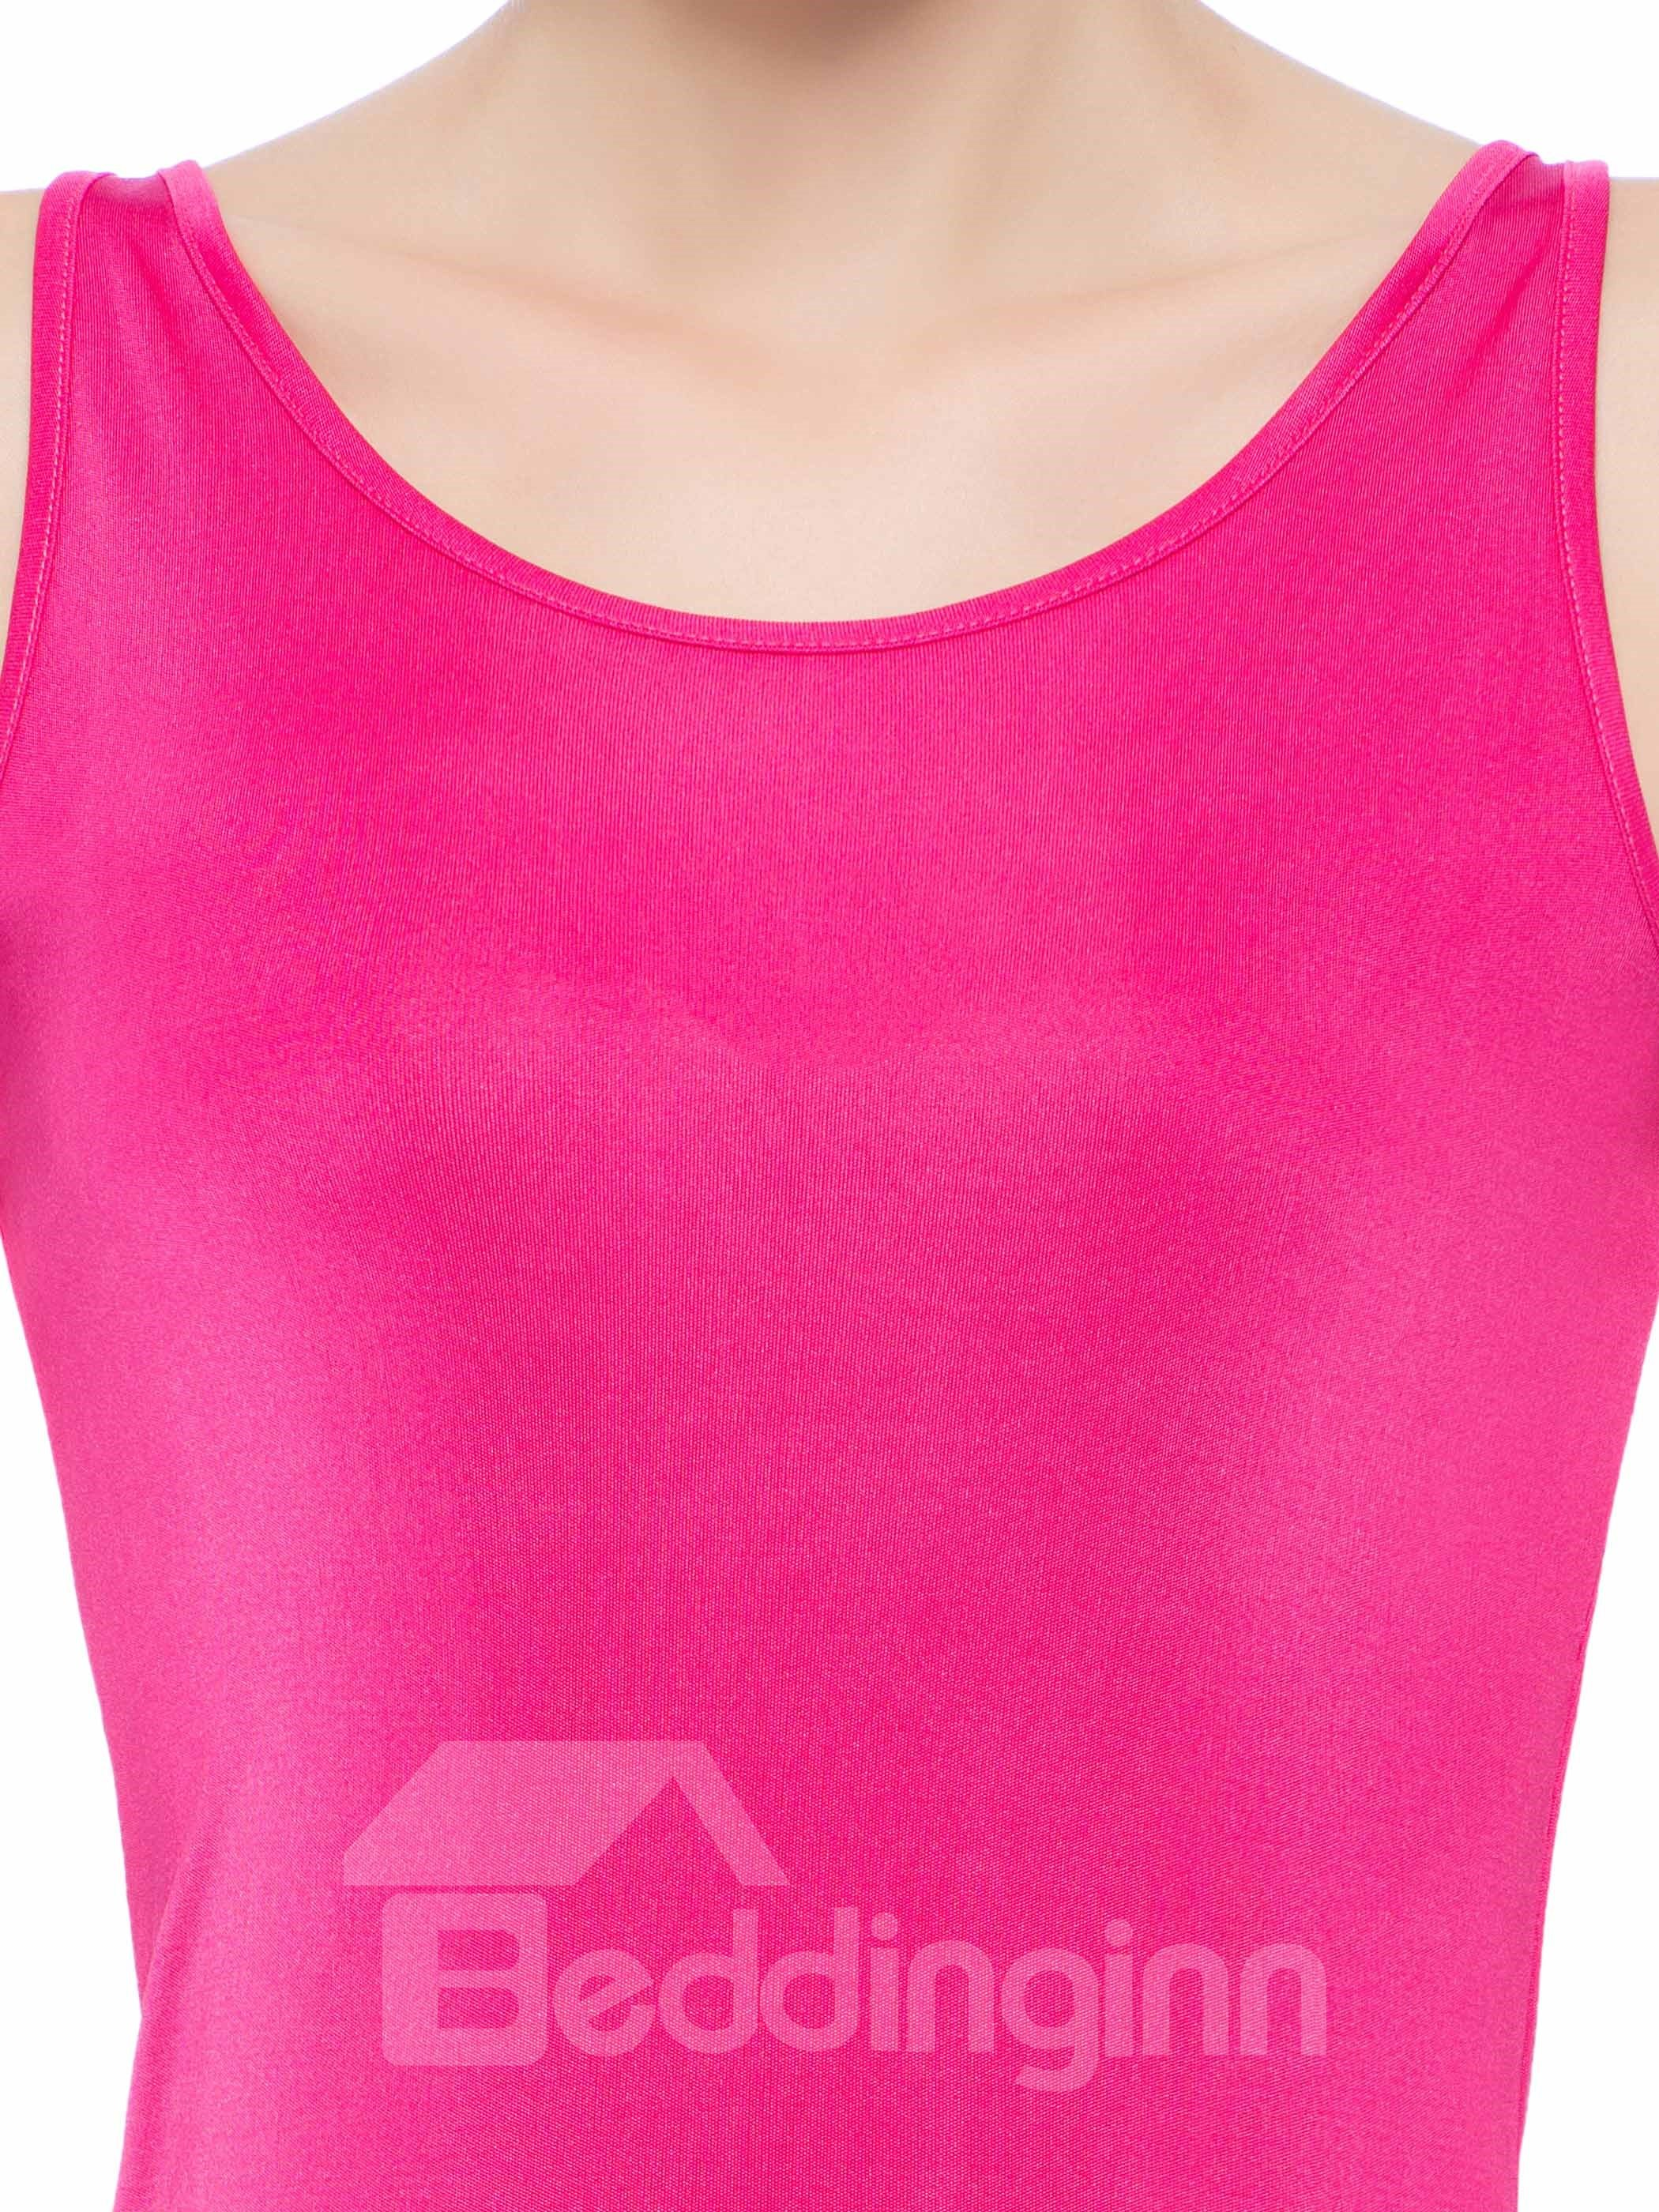 High Quality Beautiful Pink Bottom Covered Wide Strap Silk Camisole